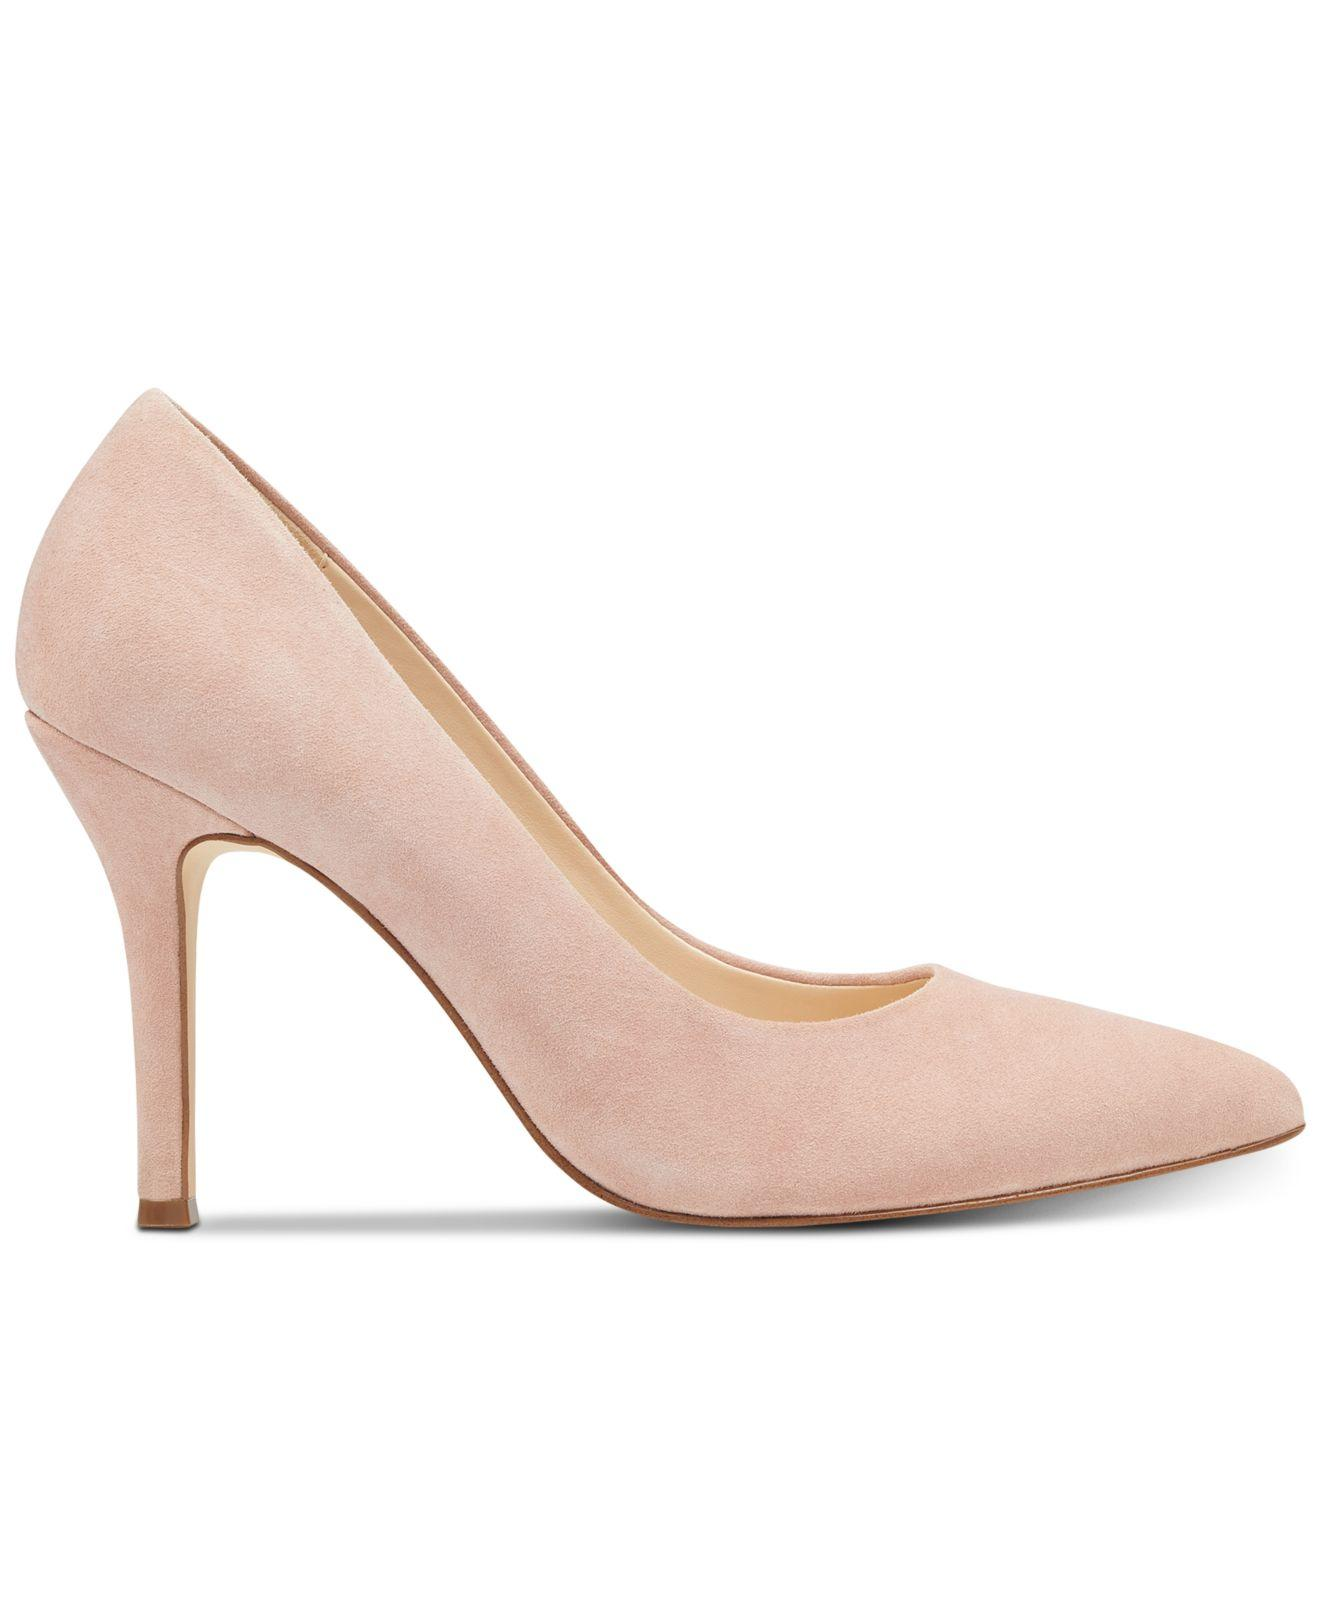 4e84d1936bcf Lyst - Nine West Flax Pointed Toe Pumps in Pink